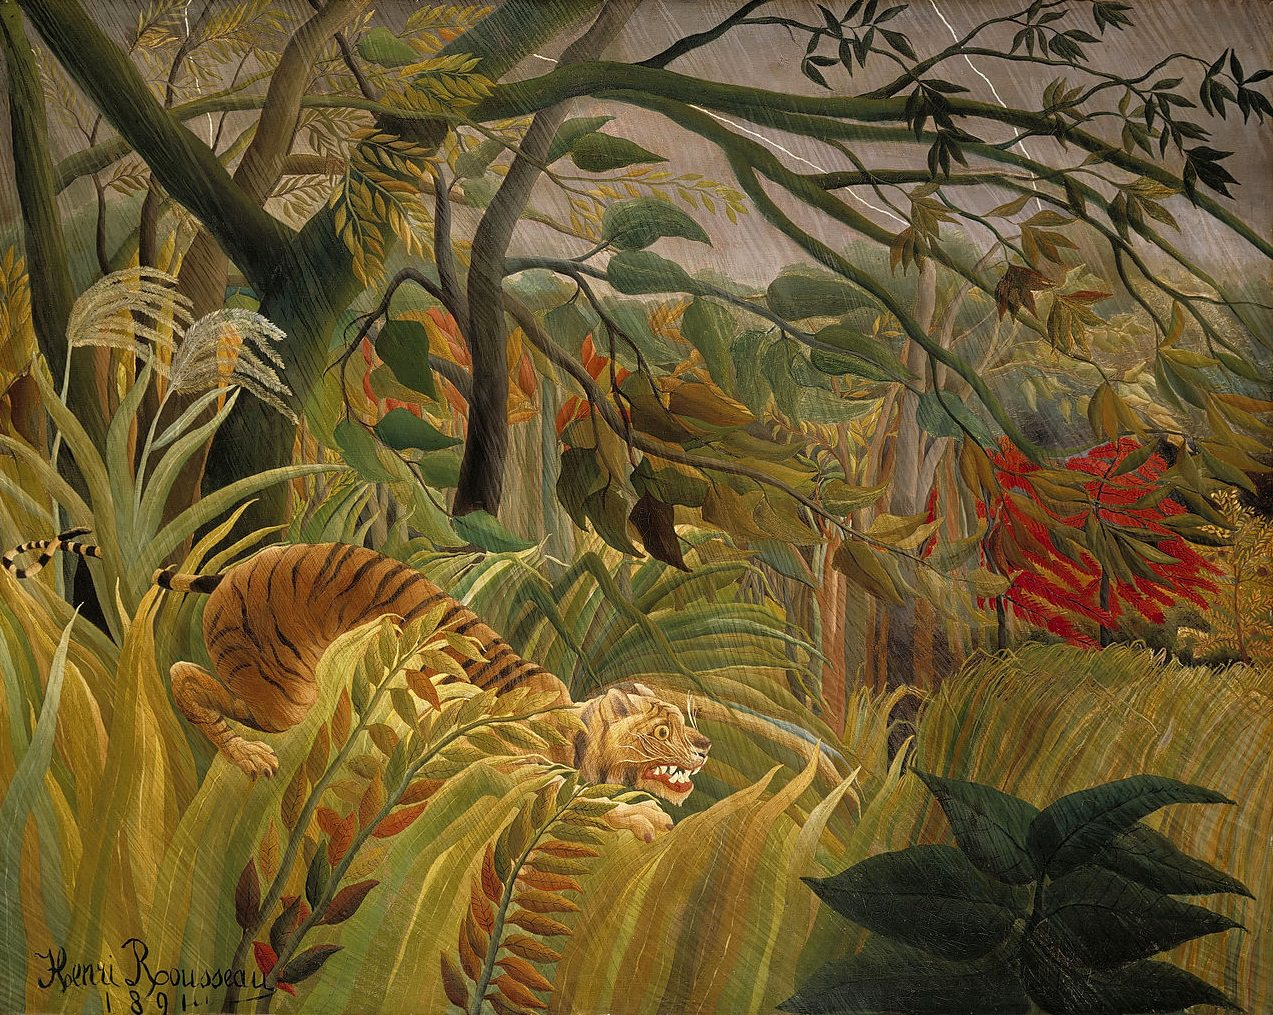 surprised-henri-rousseau